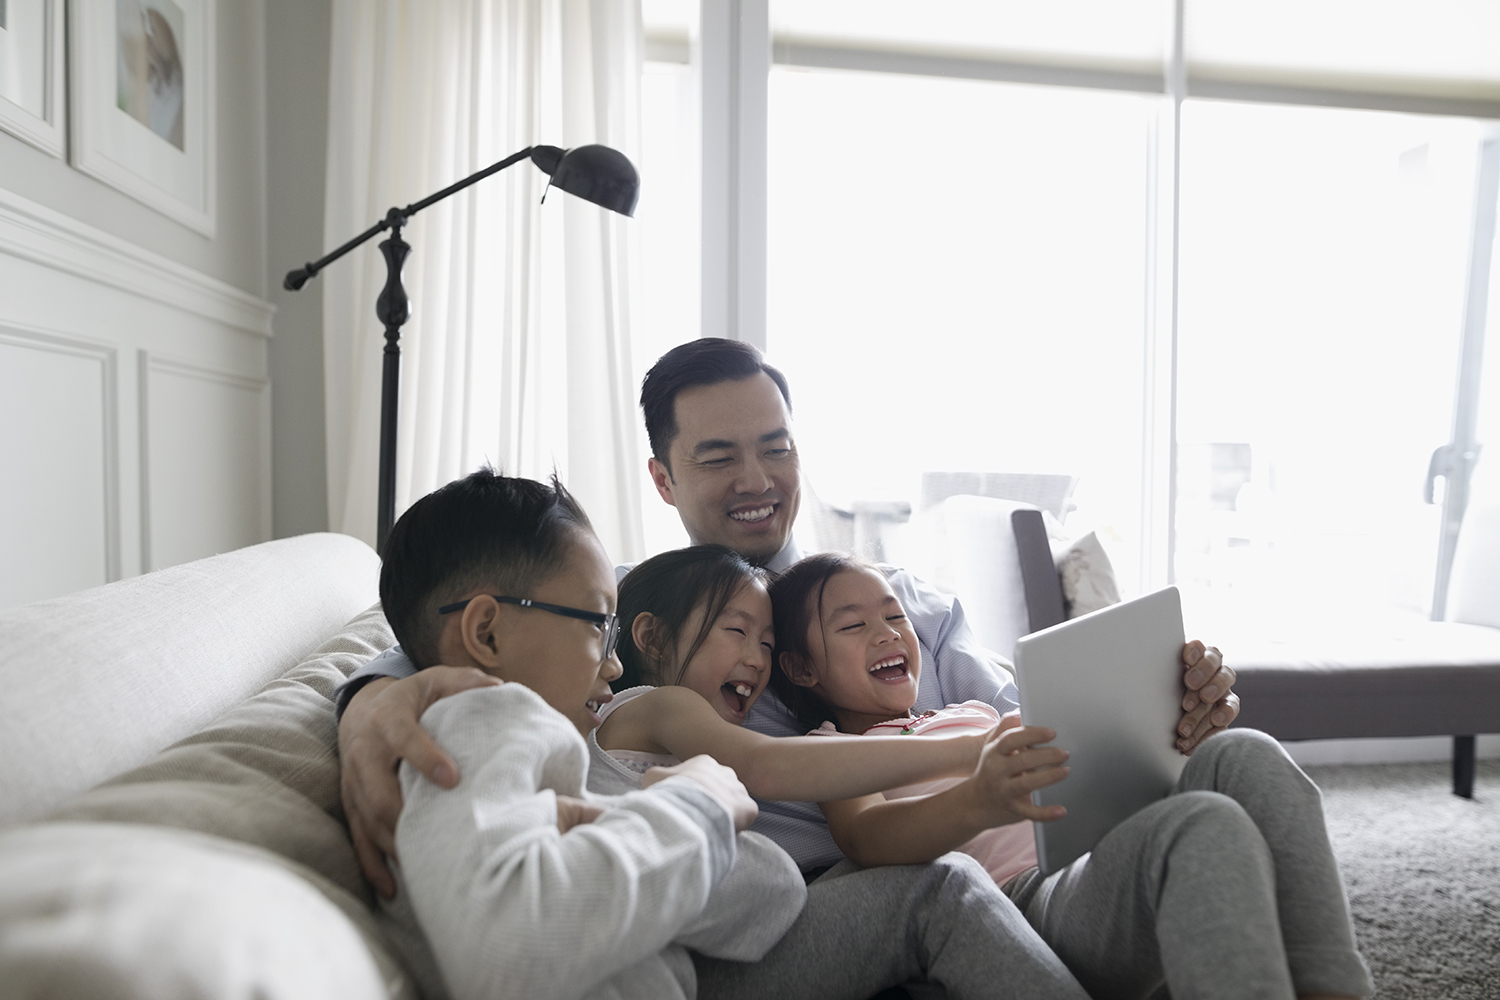 Children and Dad Laughing at Screen